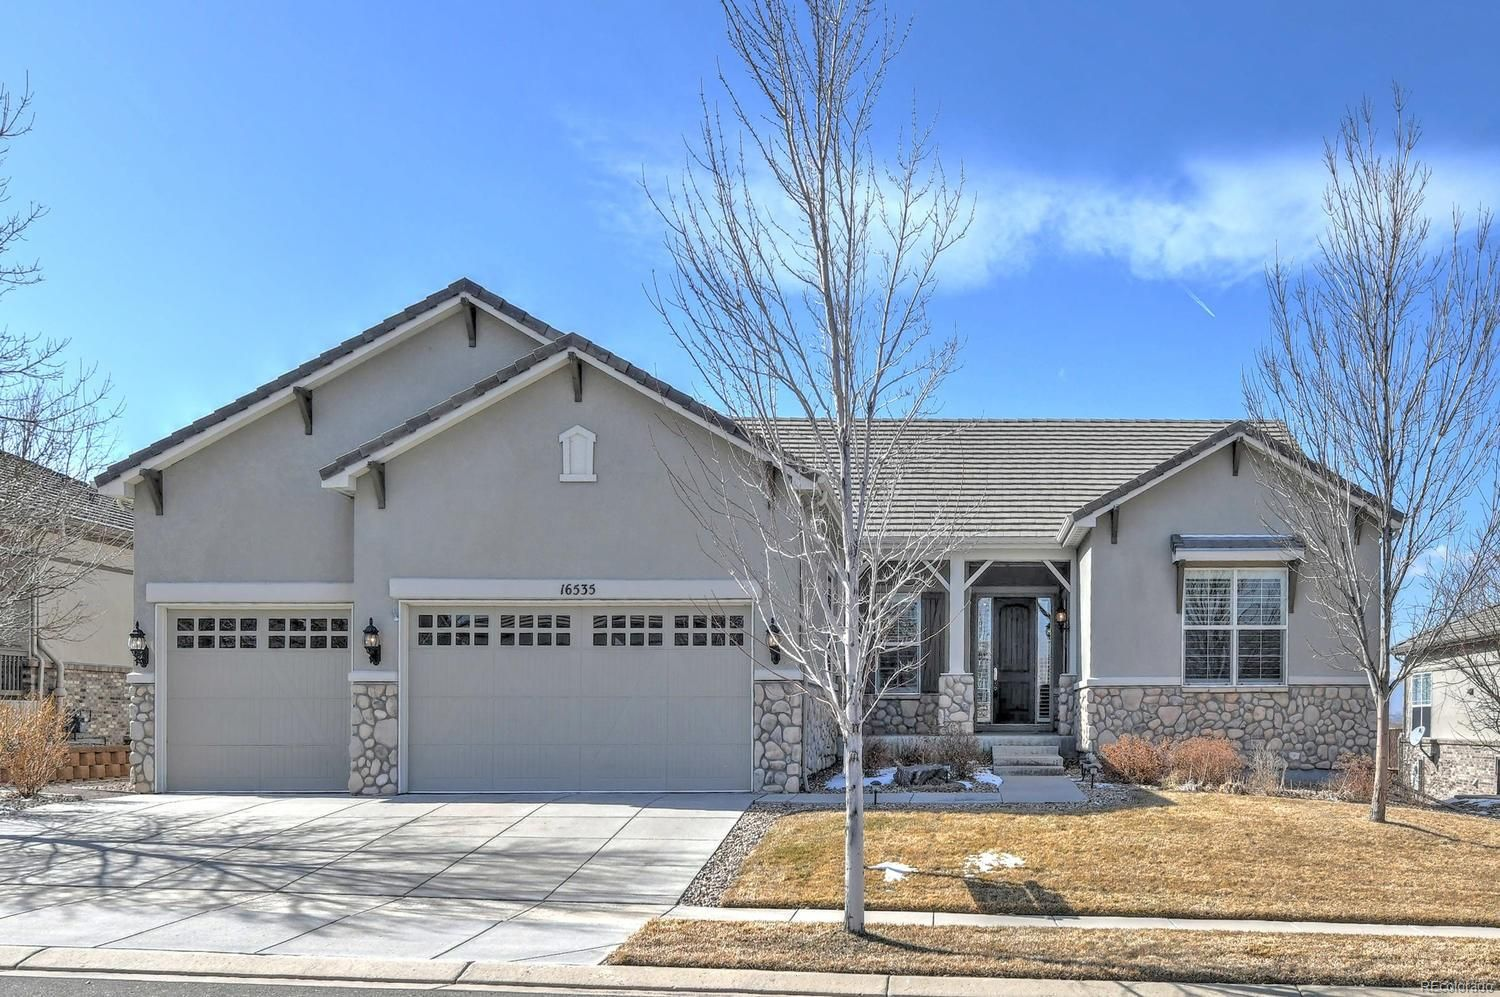 16535 Grays Way Broomfield Co 80023 Property Prices House